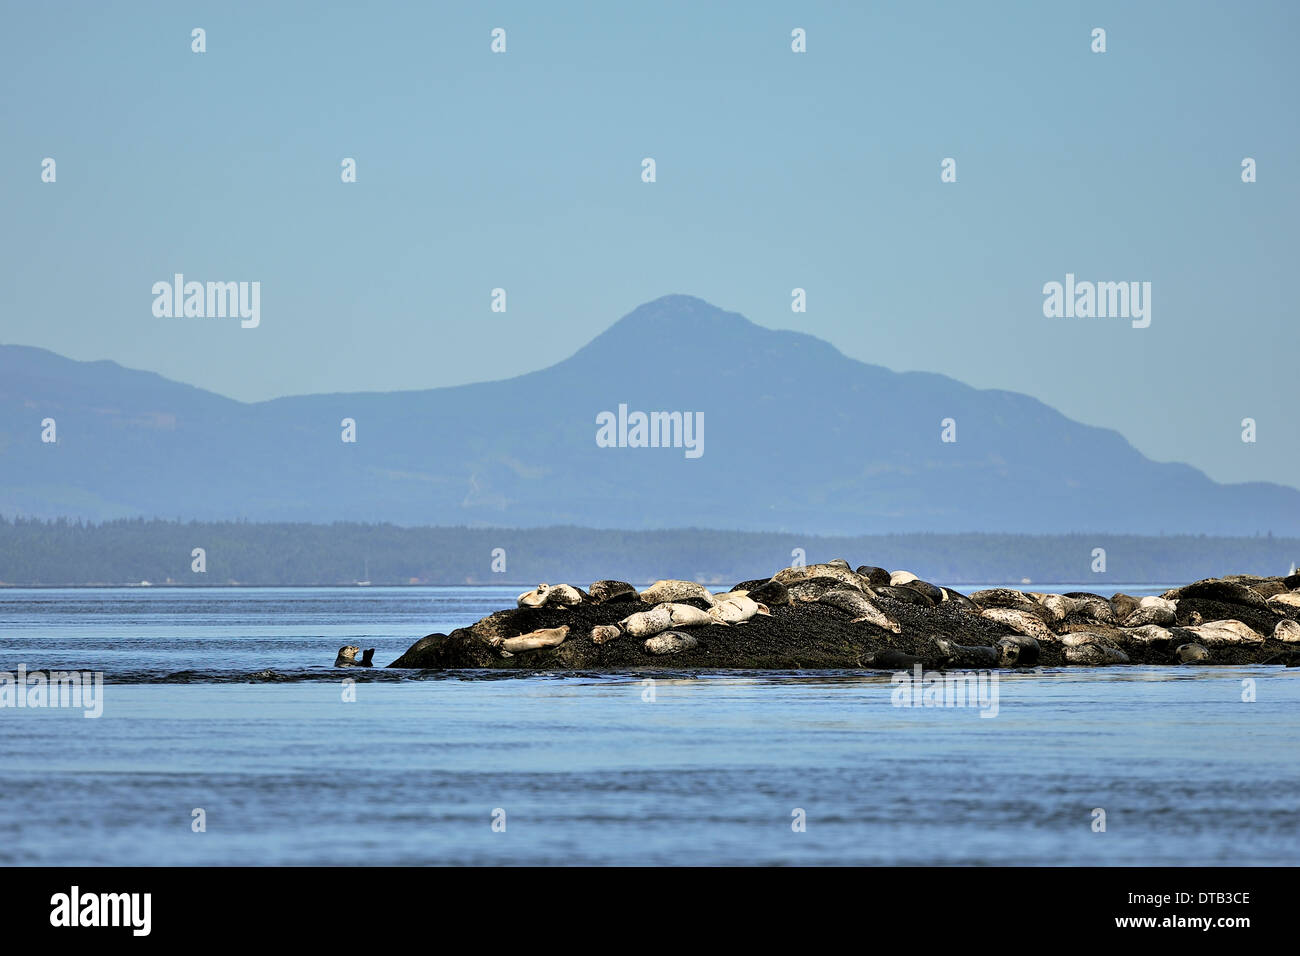 A herd harbor (or harbour) seals (Phoca vitulina) also known as the common seal basking in the sun on an island outcrop - Stock Image